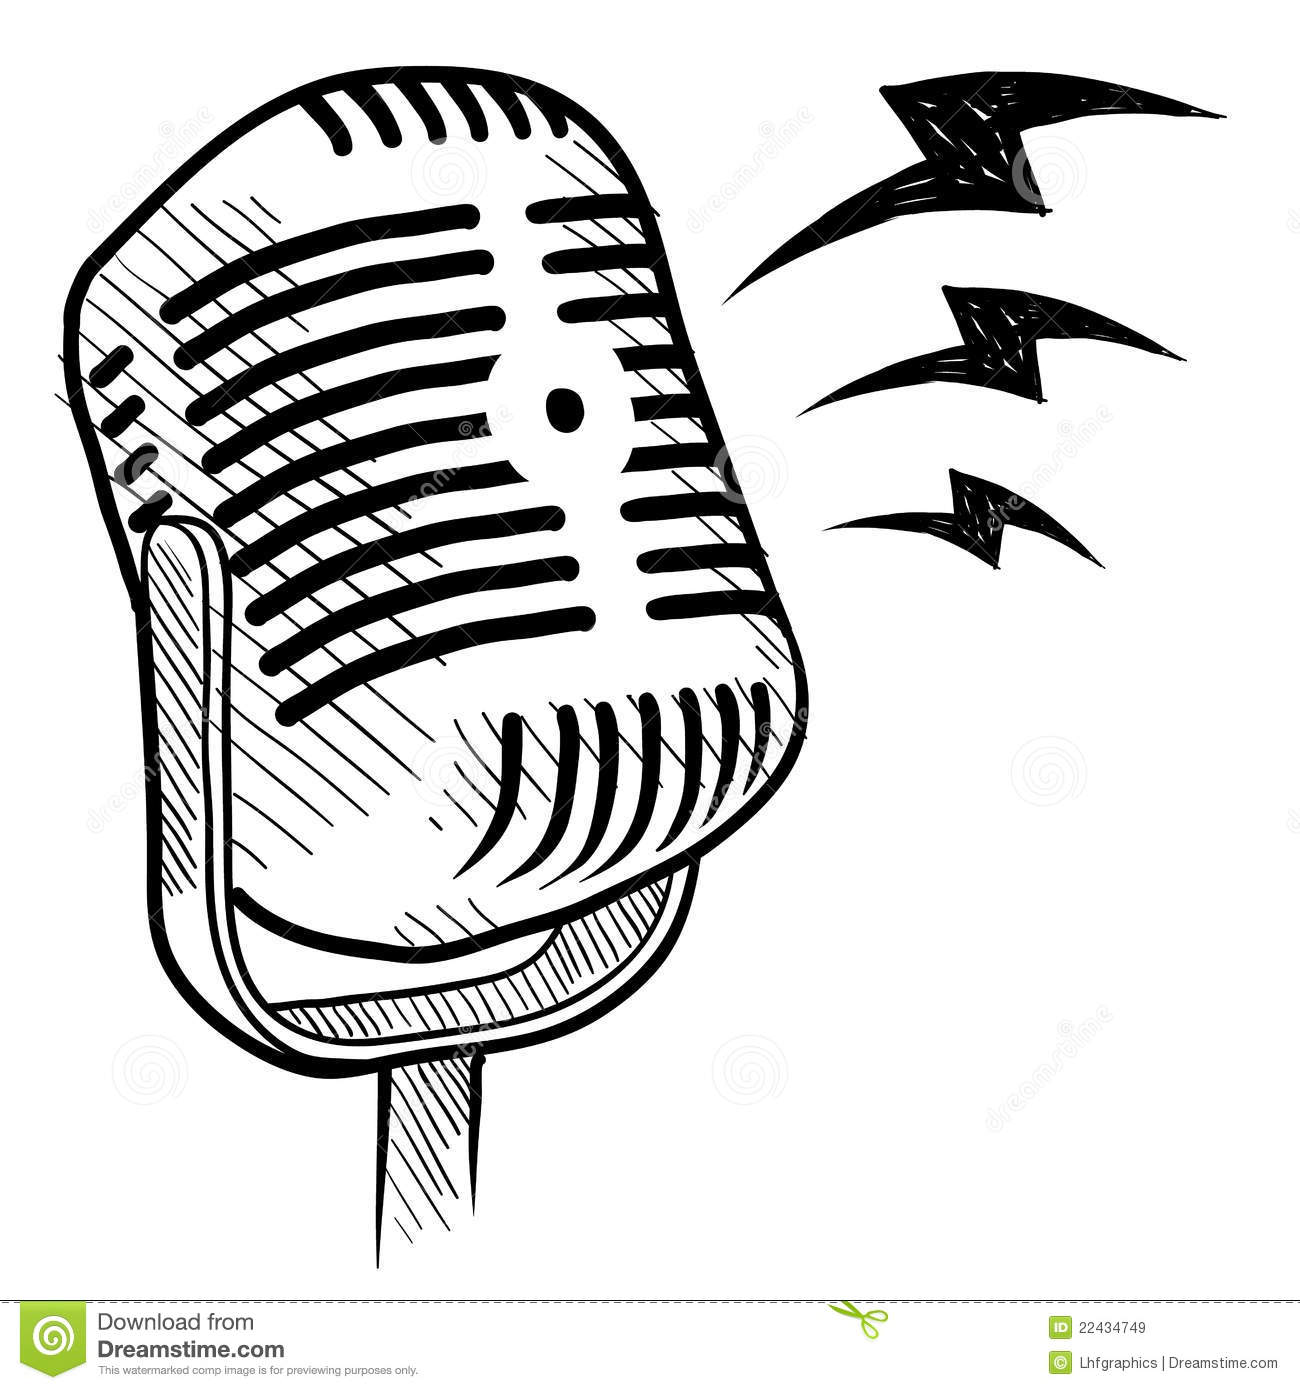 Retro microphone drawing stock vector. Illustration of